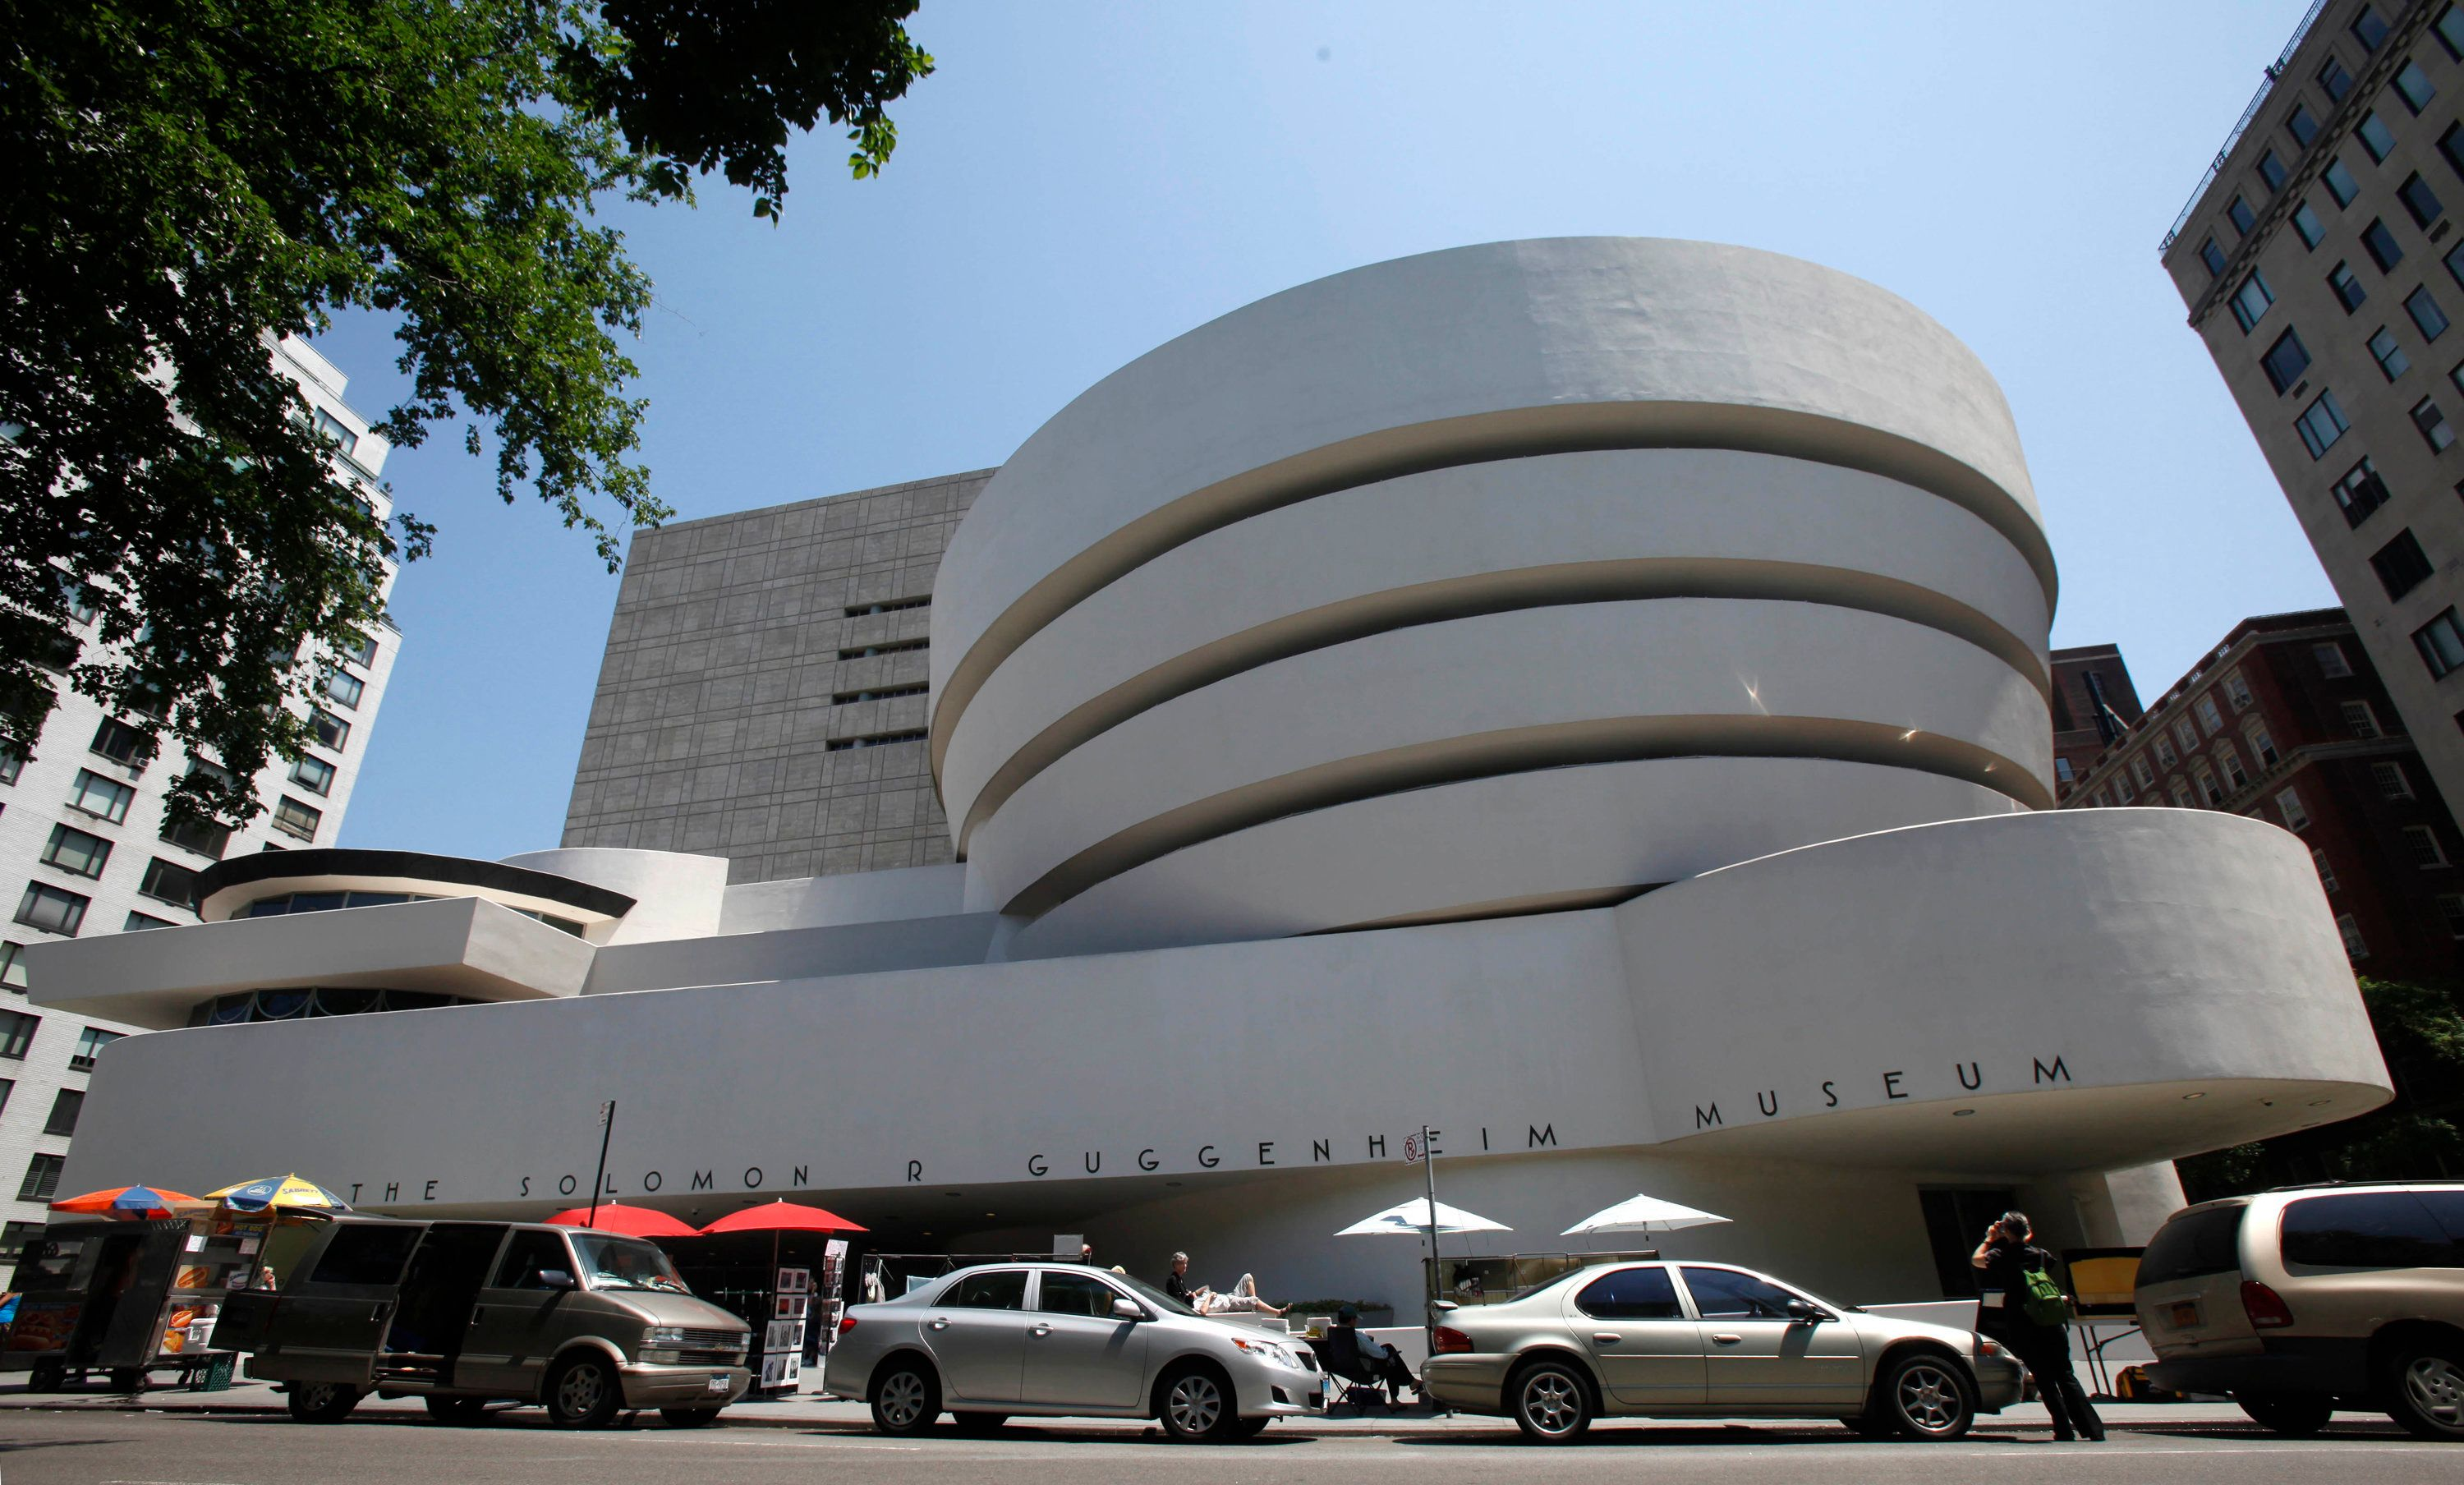 FILE - This May 31, 2011 file photo shows the exterior of Frank Lloyd Wright's Solomon R. Guggenheim Museum in New York. Thursday, June 8, 2017 marks the 150th anniversary of Wright's birth. His innovative designs continue to fascinate the public, from New York's circular, sculptural Guggenheim museum, to the famous Fallingwater in the Pennsylvania woods, to his modernist Wisconsin home, Taliesin, which served as a laboratory for his ideas. (AP Photo/Kathy Willens, File)